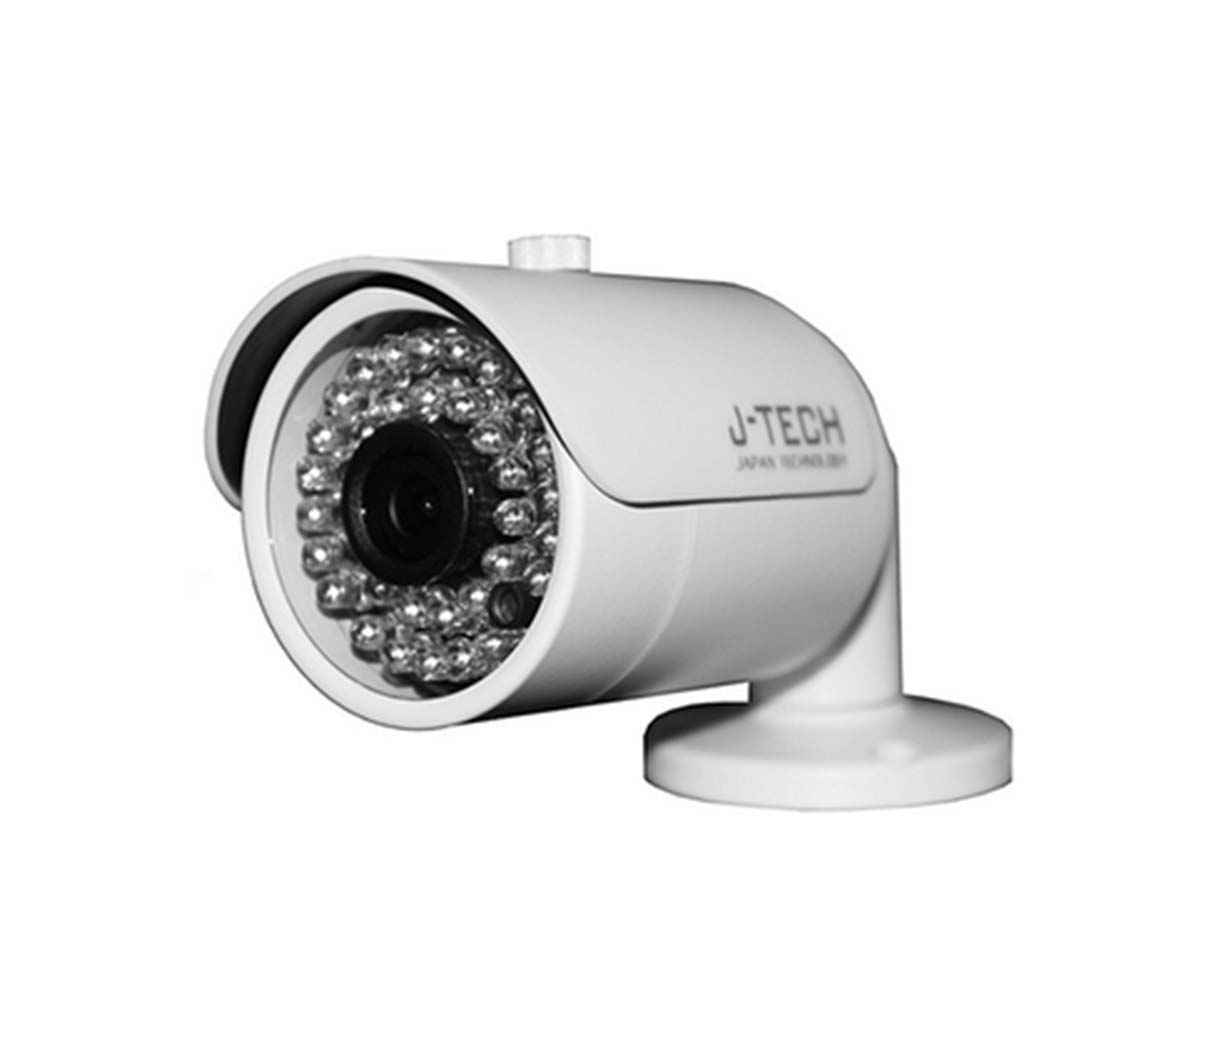 J-TECH AHD5701 THÂN 1~4MP CMOS FULL HD